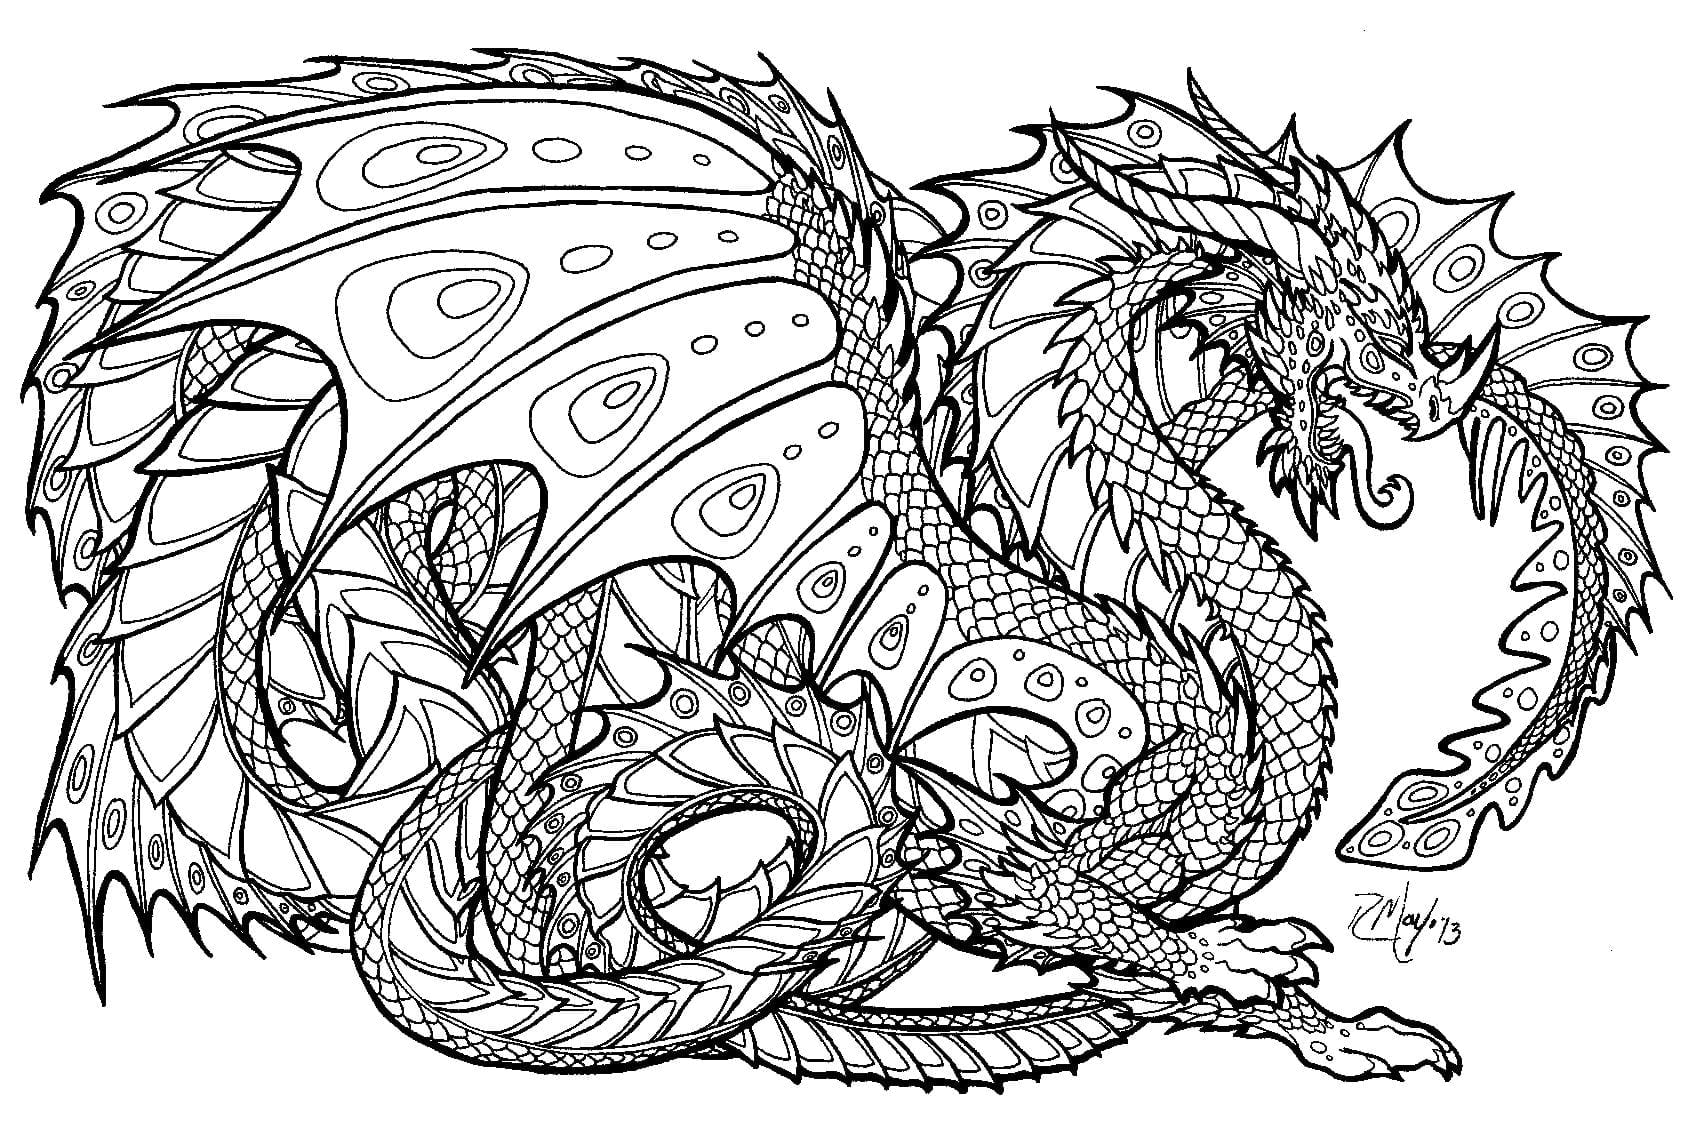 Love Dragon Colouring Pictures Free Printable Coloring Pages For